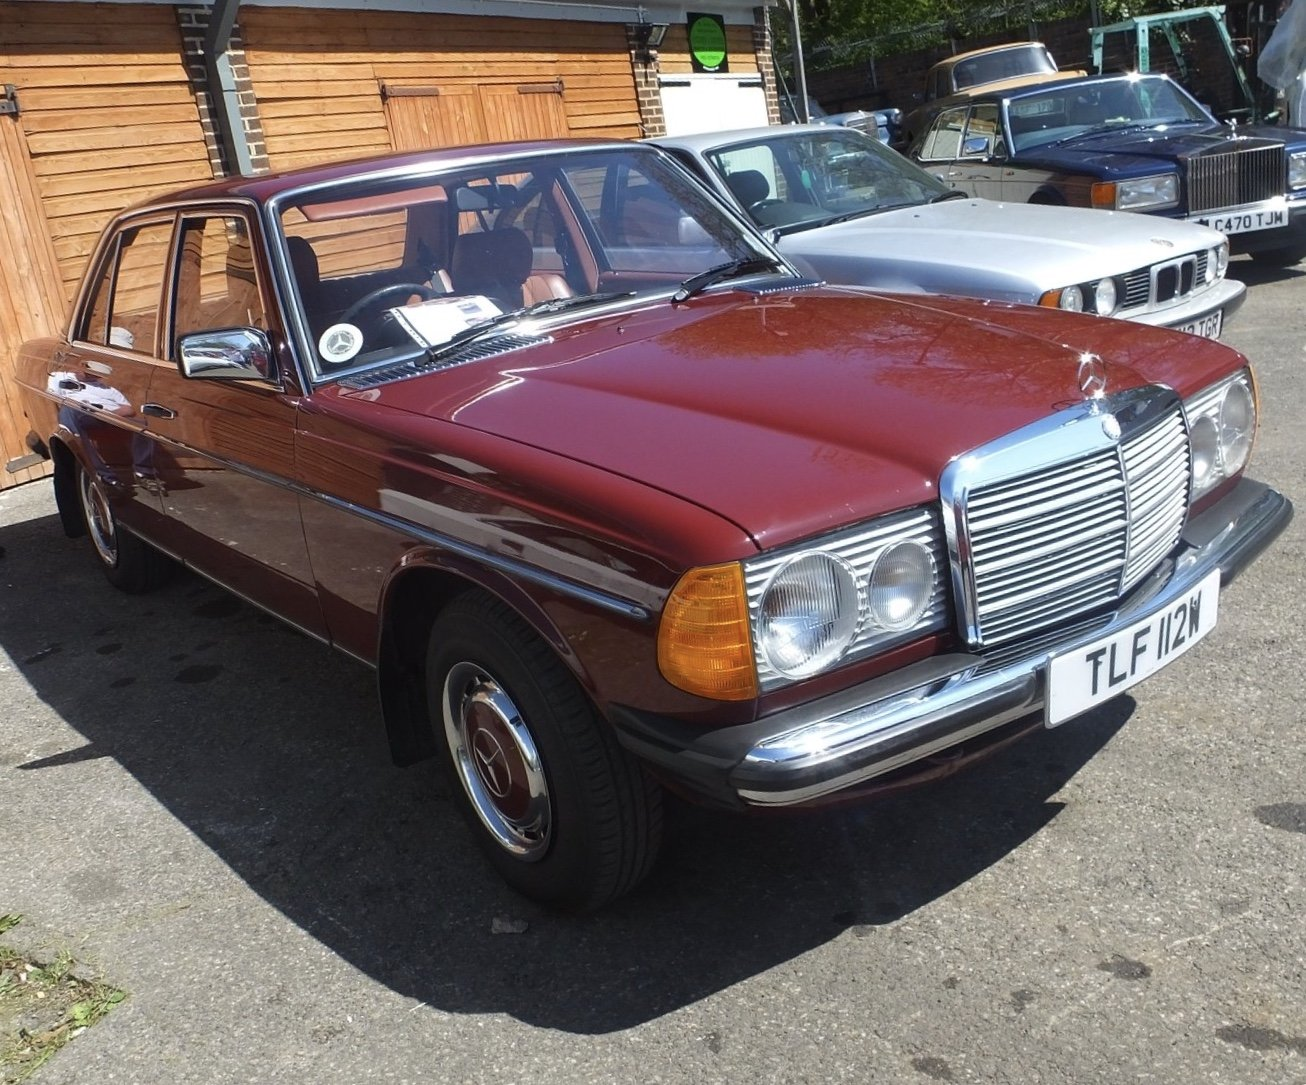 1981 Mercedes Benz W123 230E saloon For Sale (picture 1 of 6)